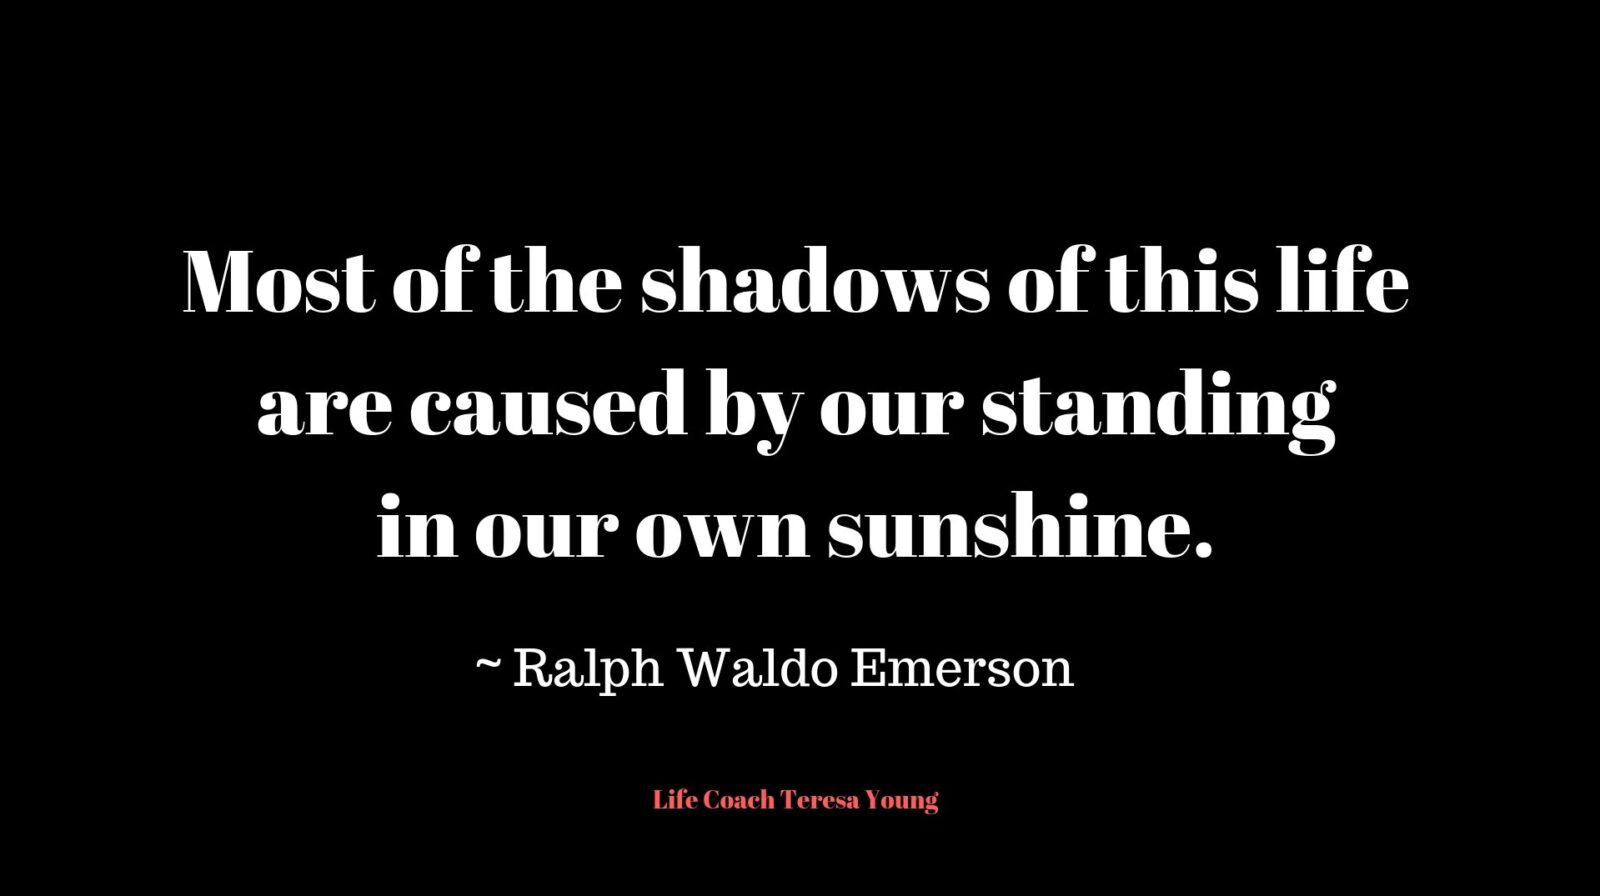 Emerson on standing in sunshine - Life Coaching with Teresa Young